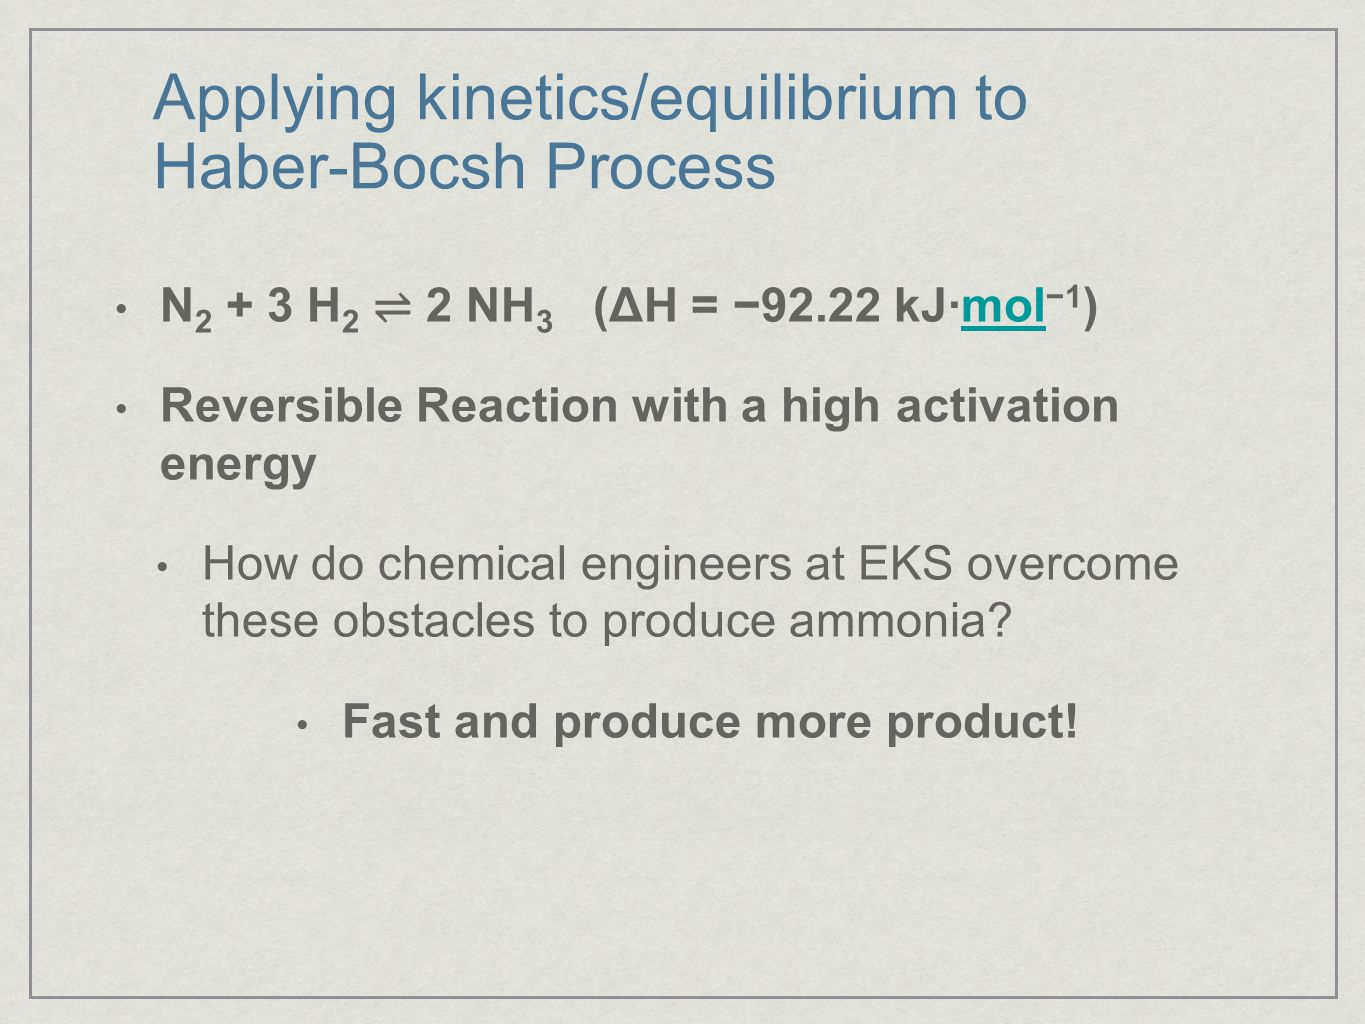 Applying kinetics/equilibrium to Haber-Bocsh Process